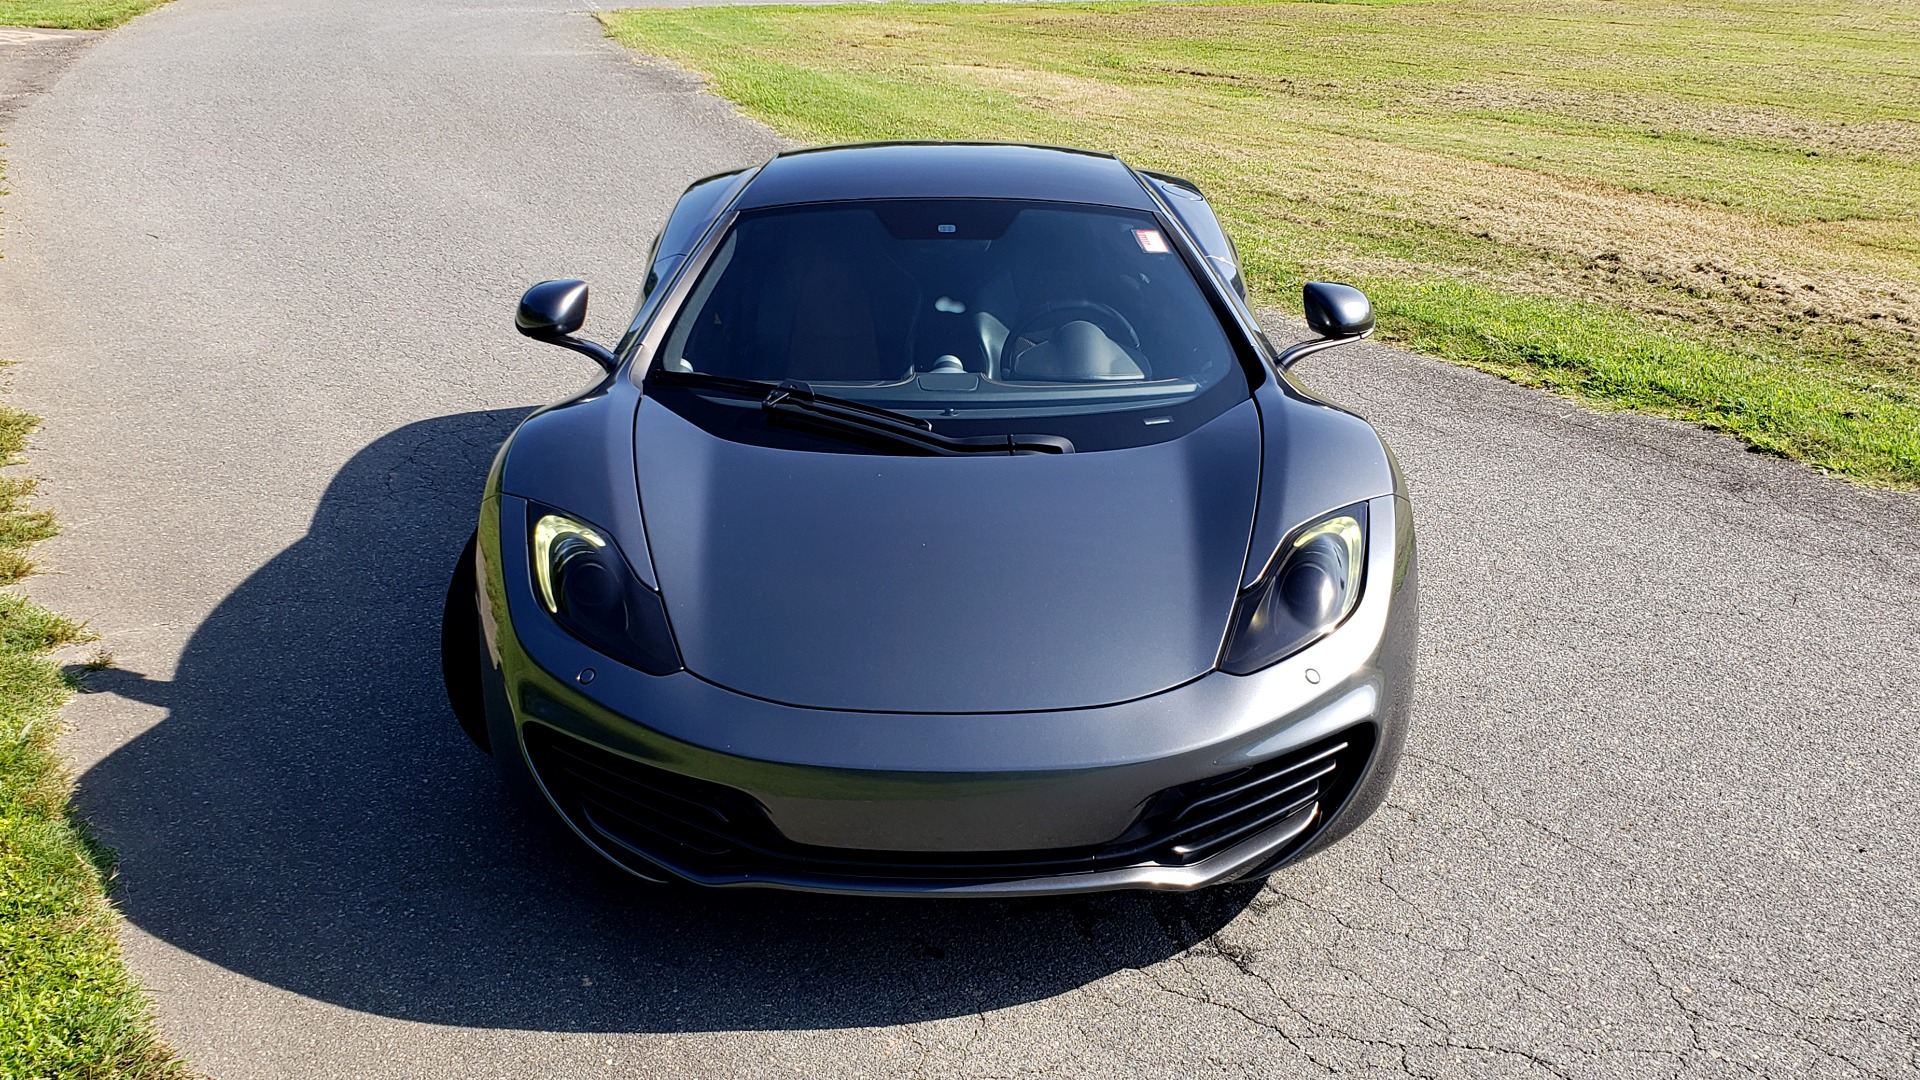 Used 2012 McLaren MP4-12C COUPE / 3.8 L V8 592HP / AUTO / NAV / CCB / LOW MILES for sale Sold at Formula Imports in Charlotte NC 28227 8